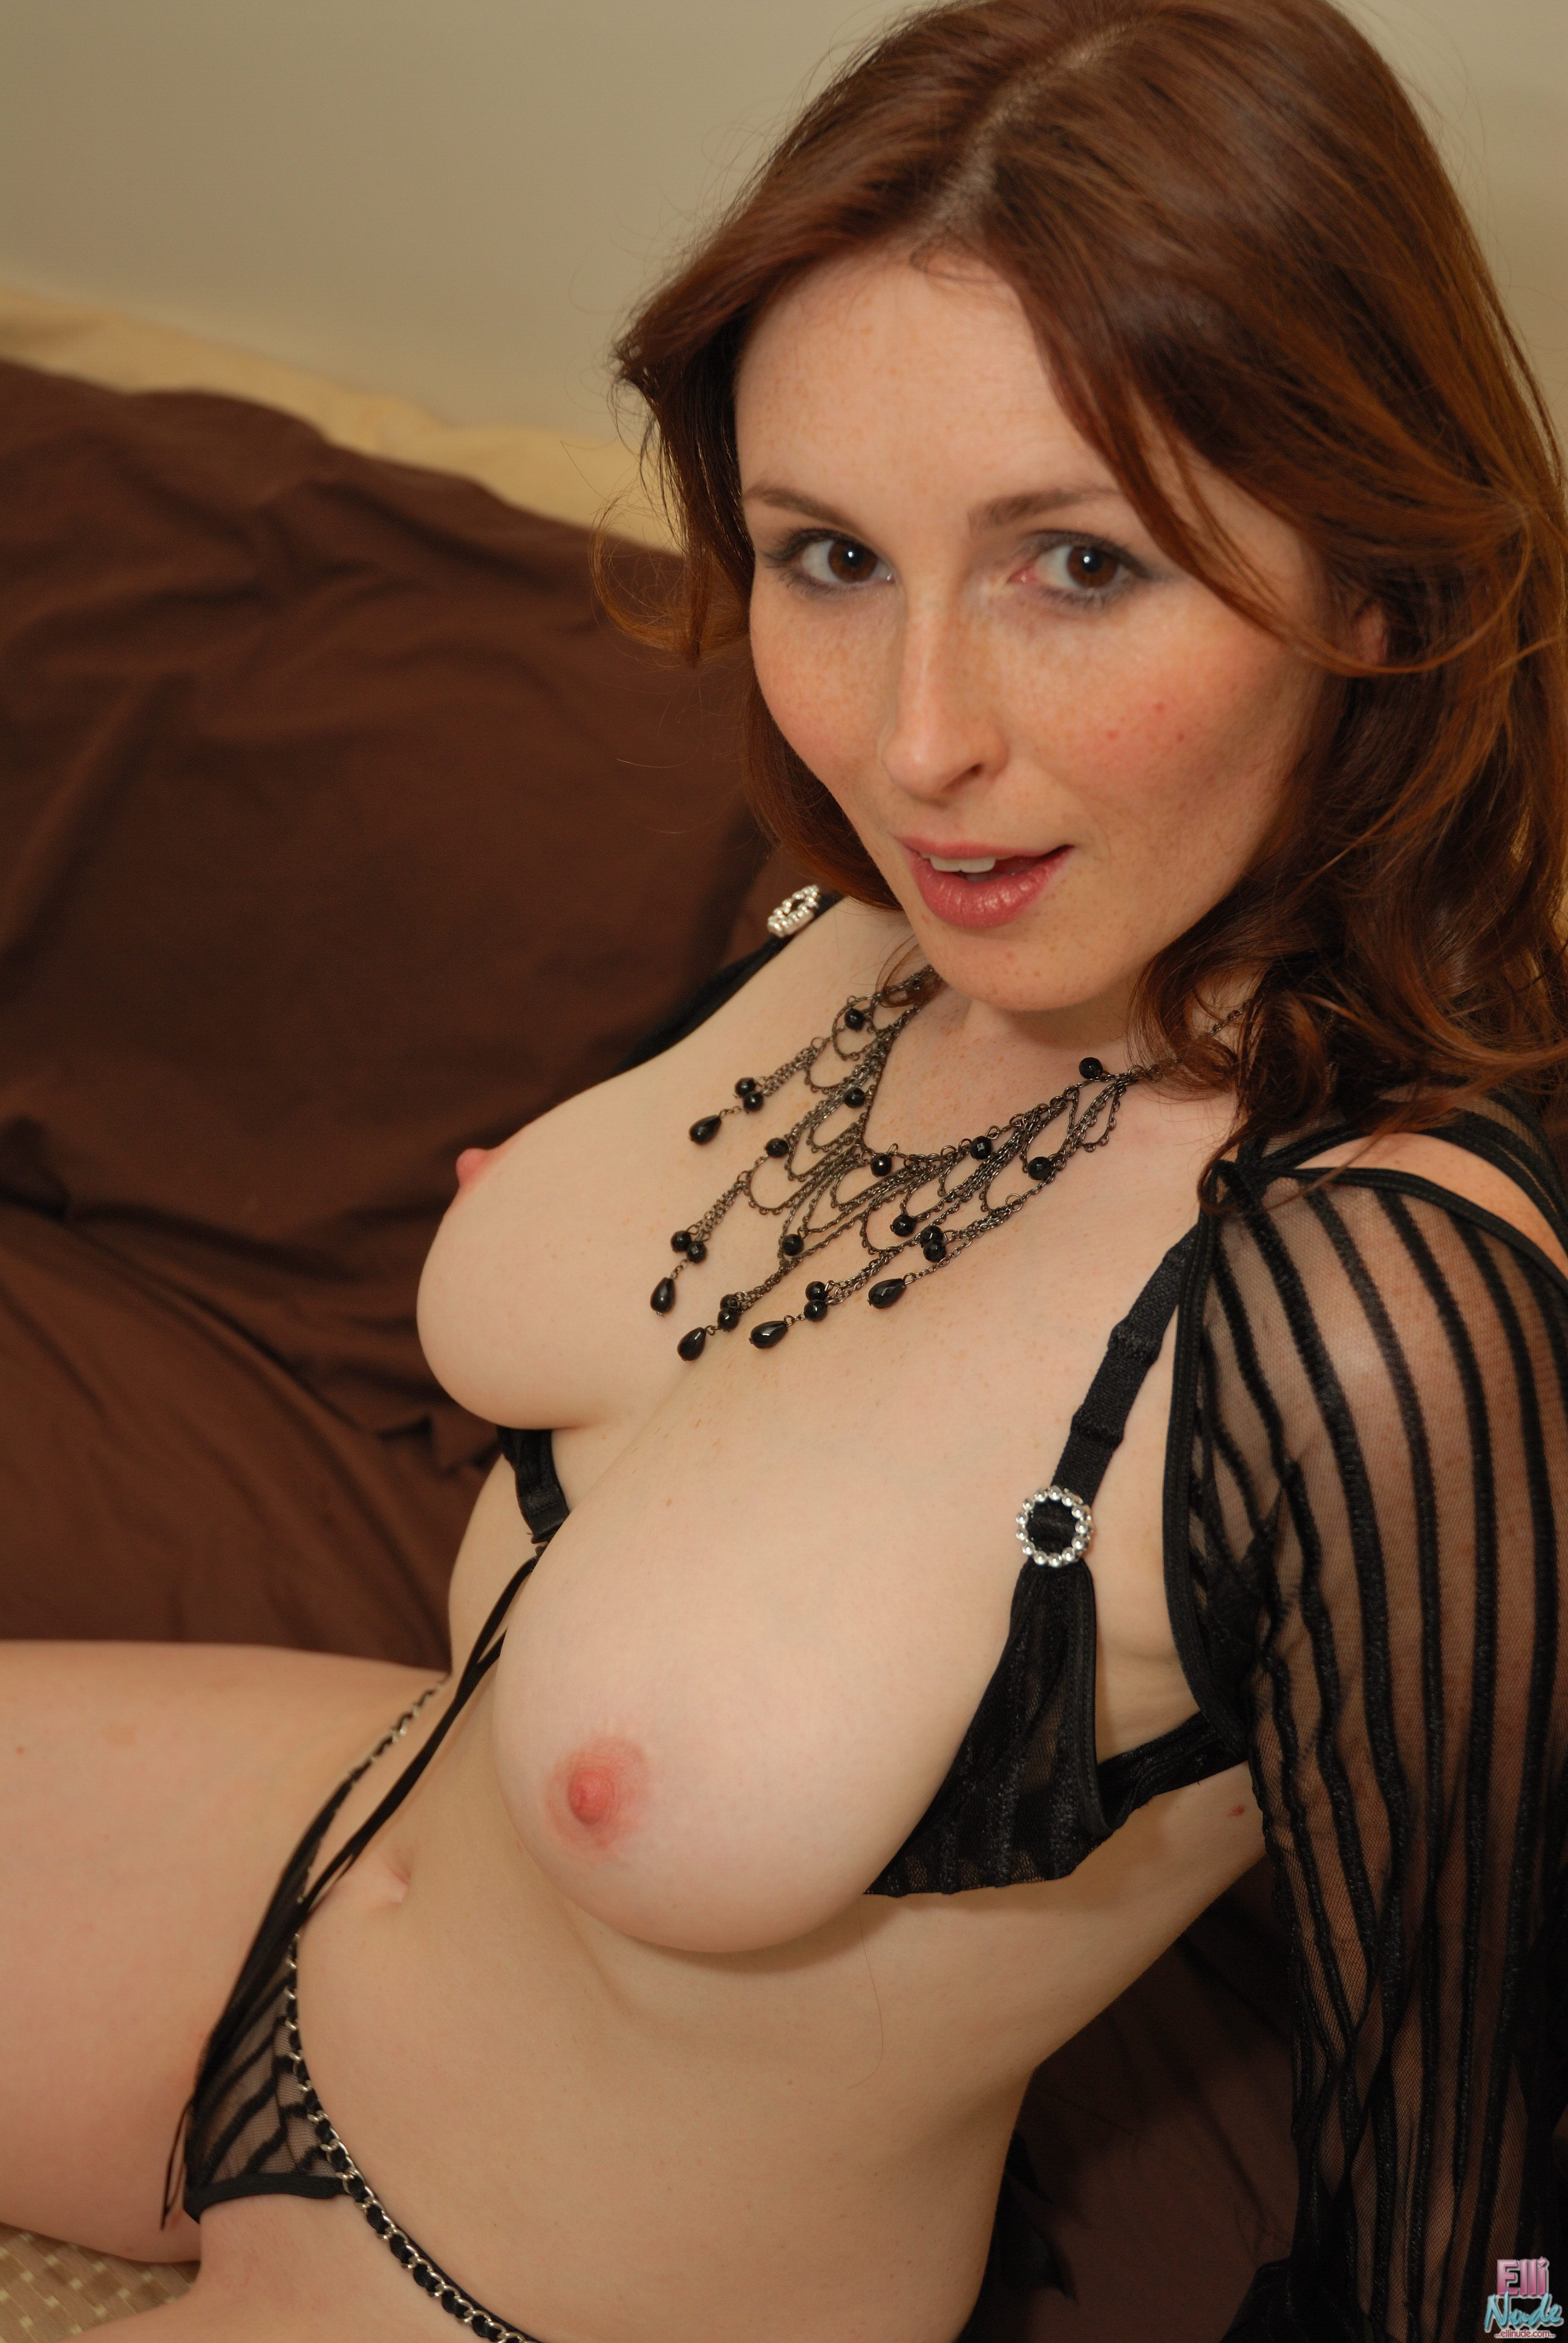 milftoon beach reception free porn comix online #LaurenPhillips #bigtits #doctor #ginger #milf #pale #patient #redhead #reversecowgirl #sexy #tattooed